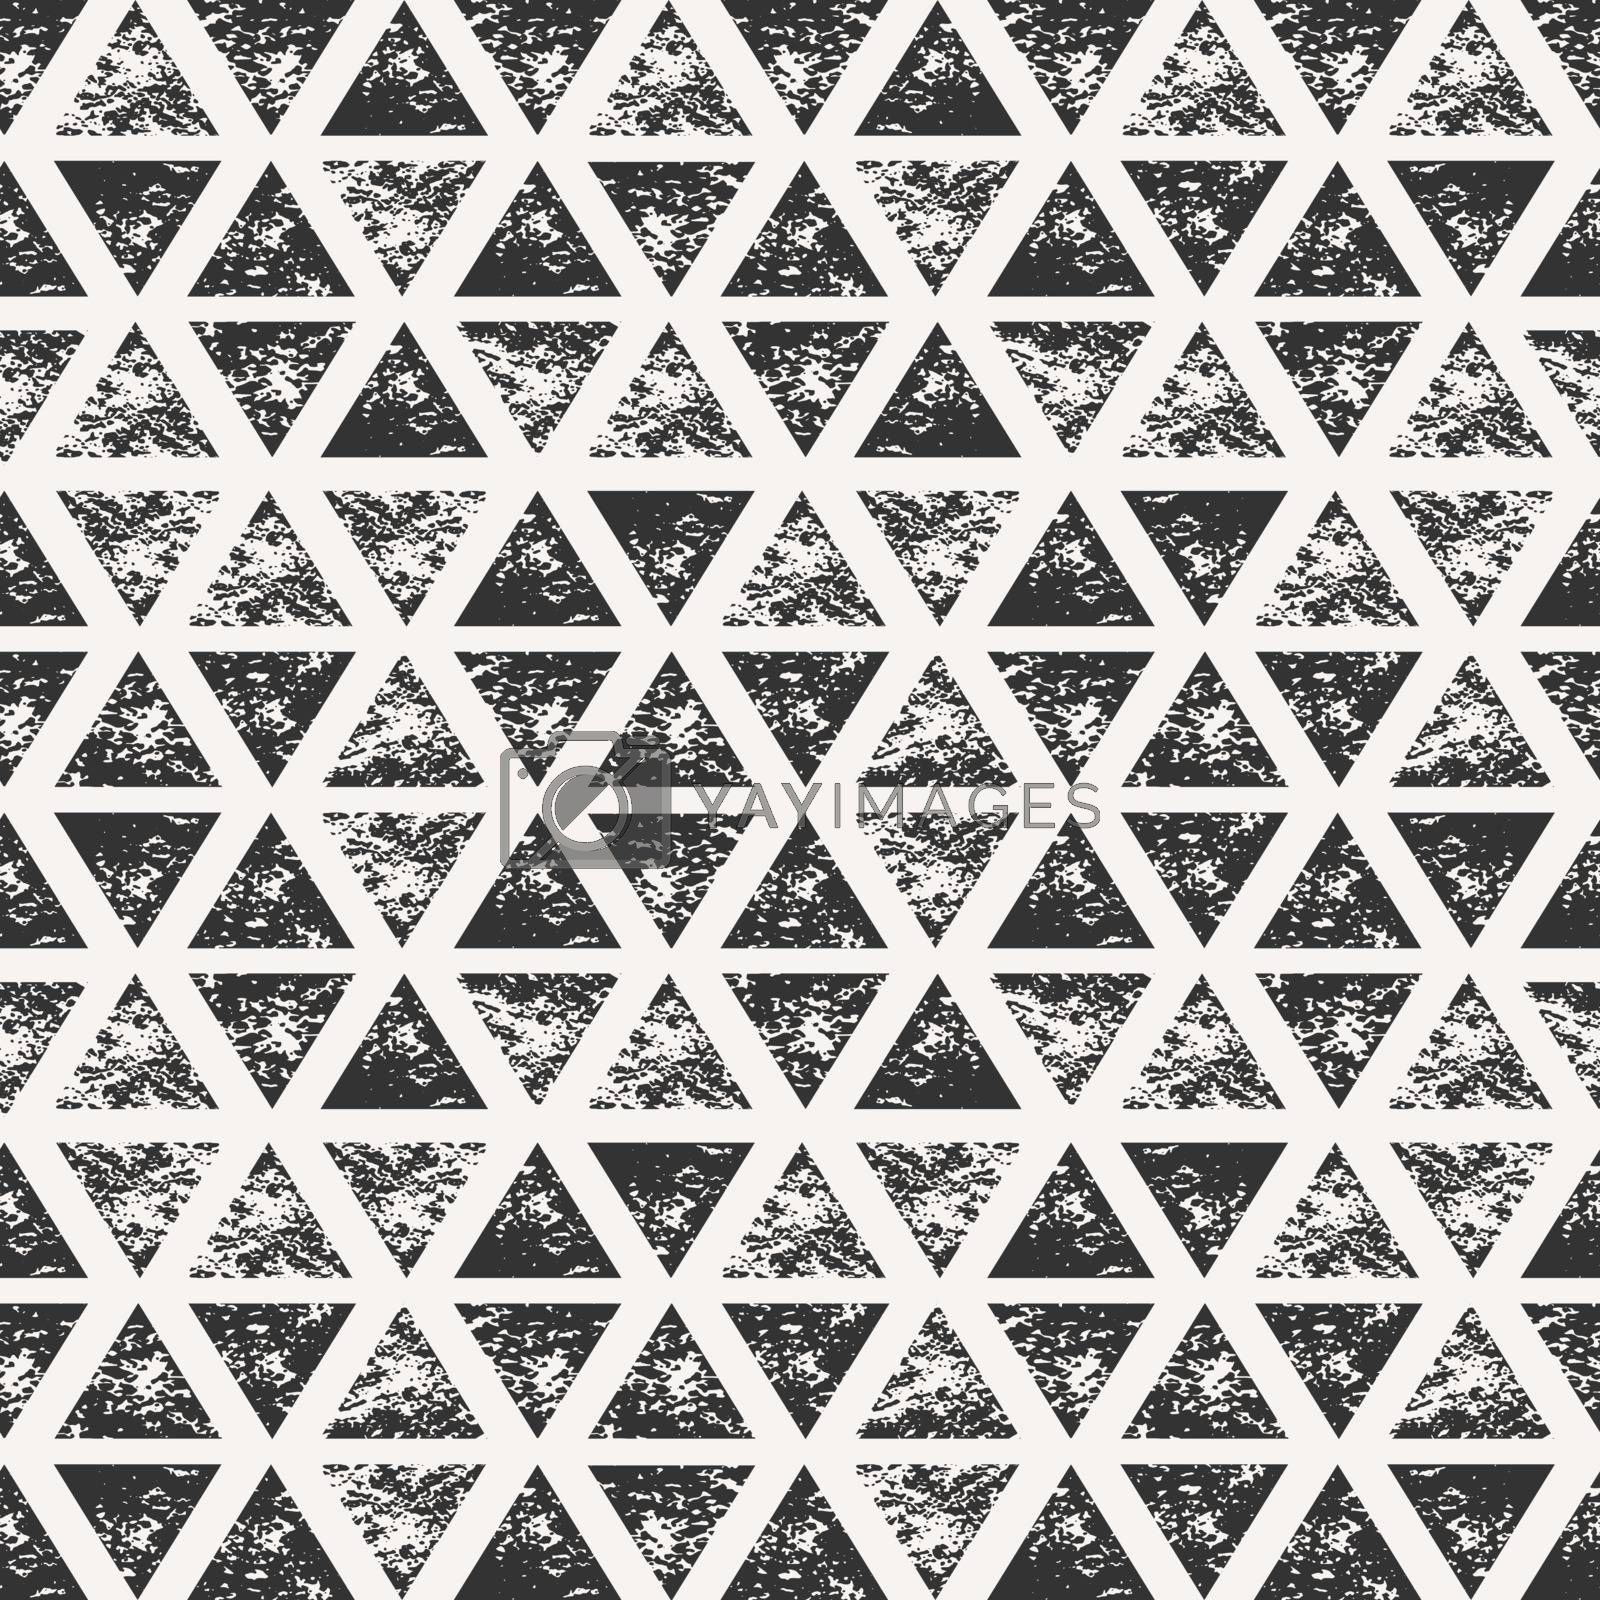 Abstract Triangular Shapes Seamless Pattern by ivaleksa